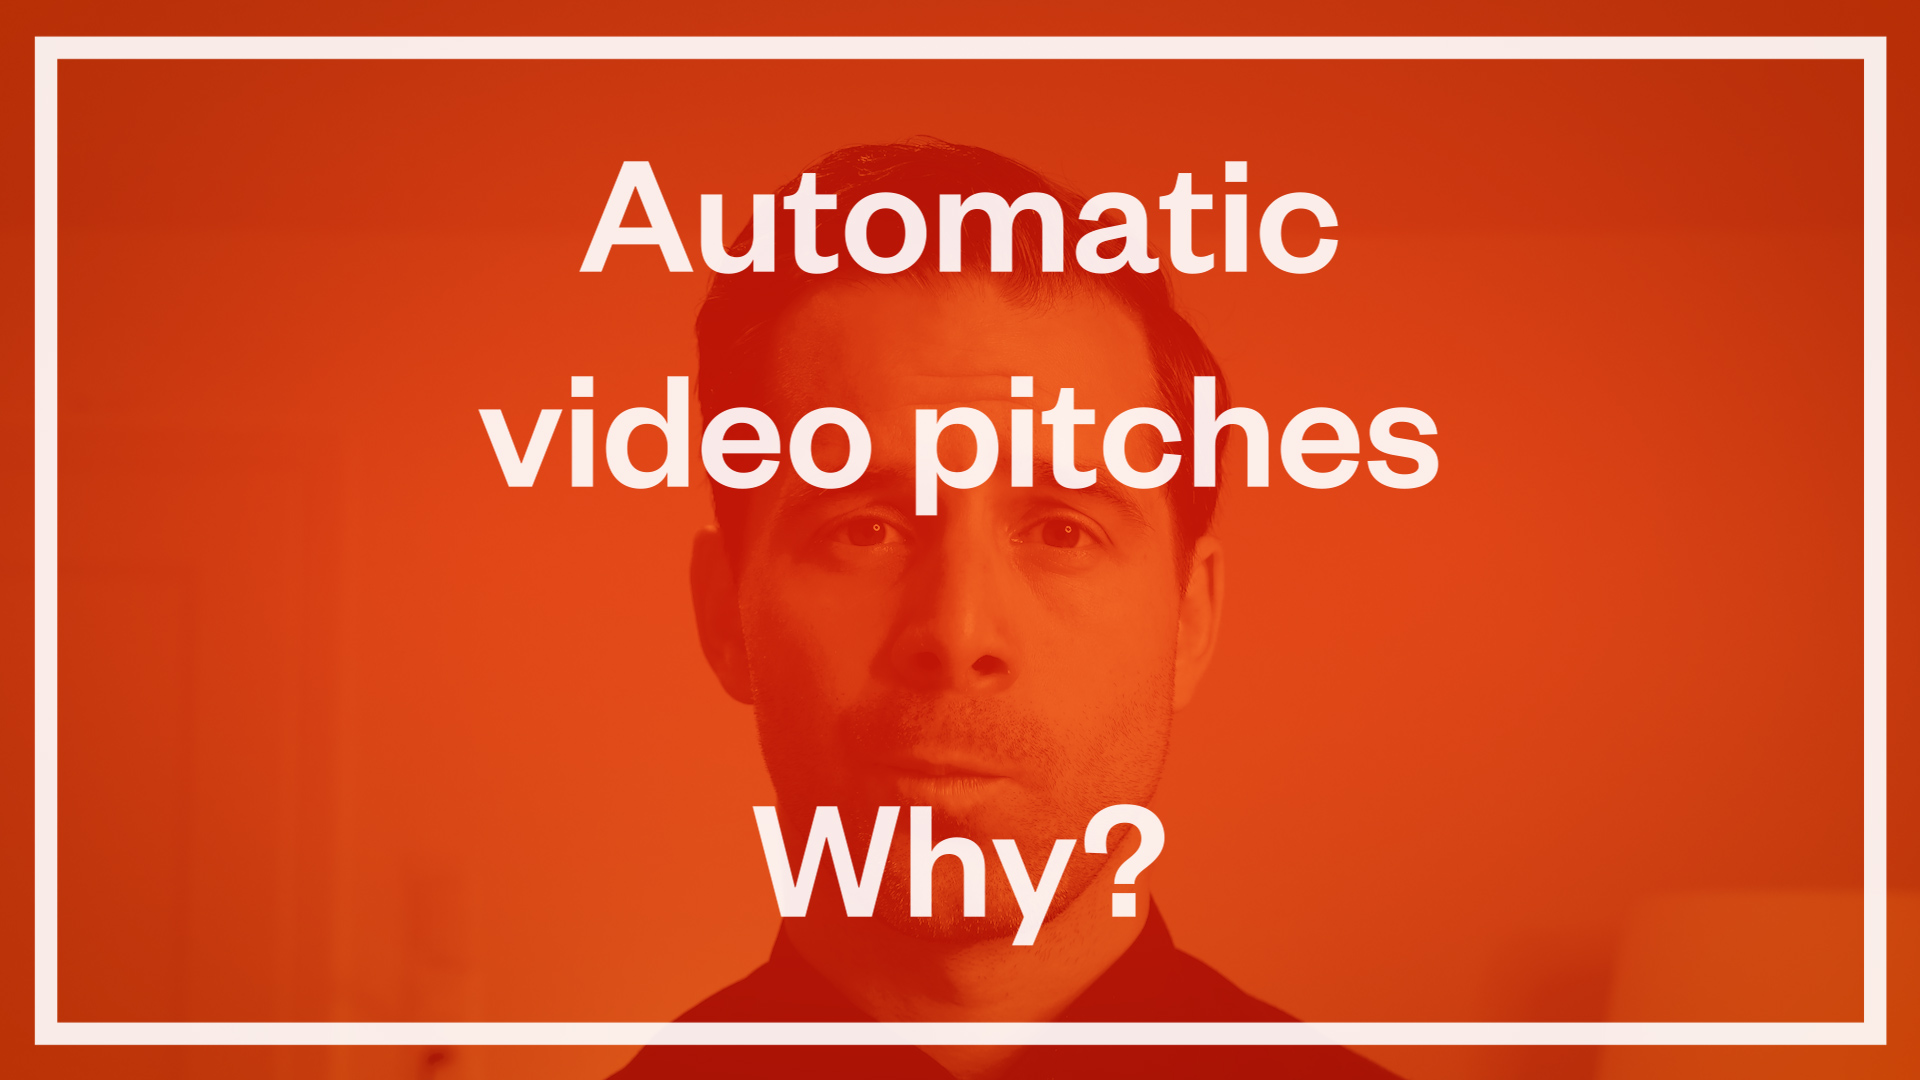 Automated Video Pitches: Why?